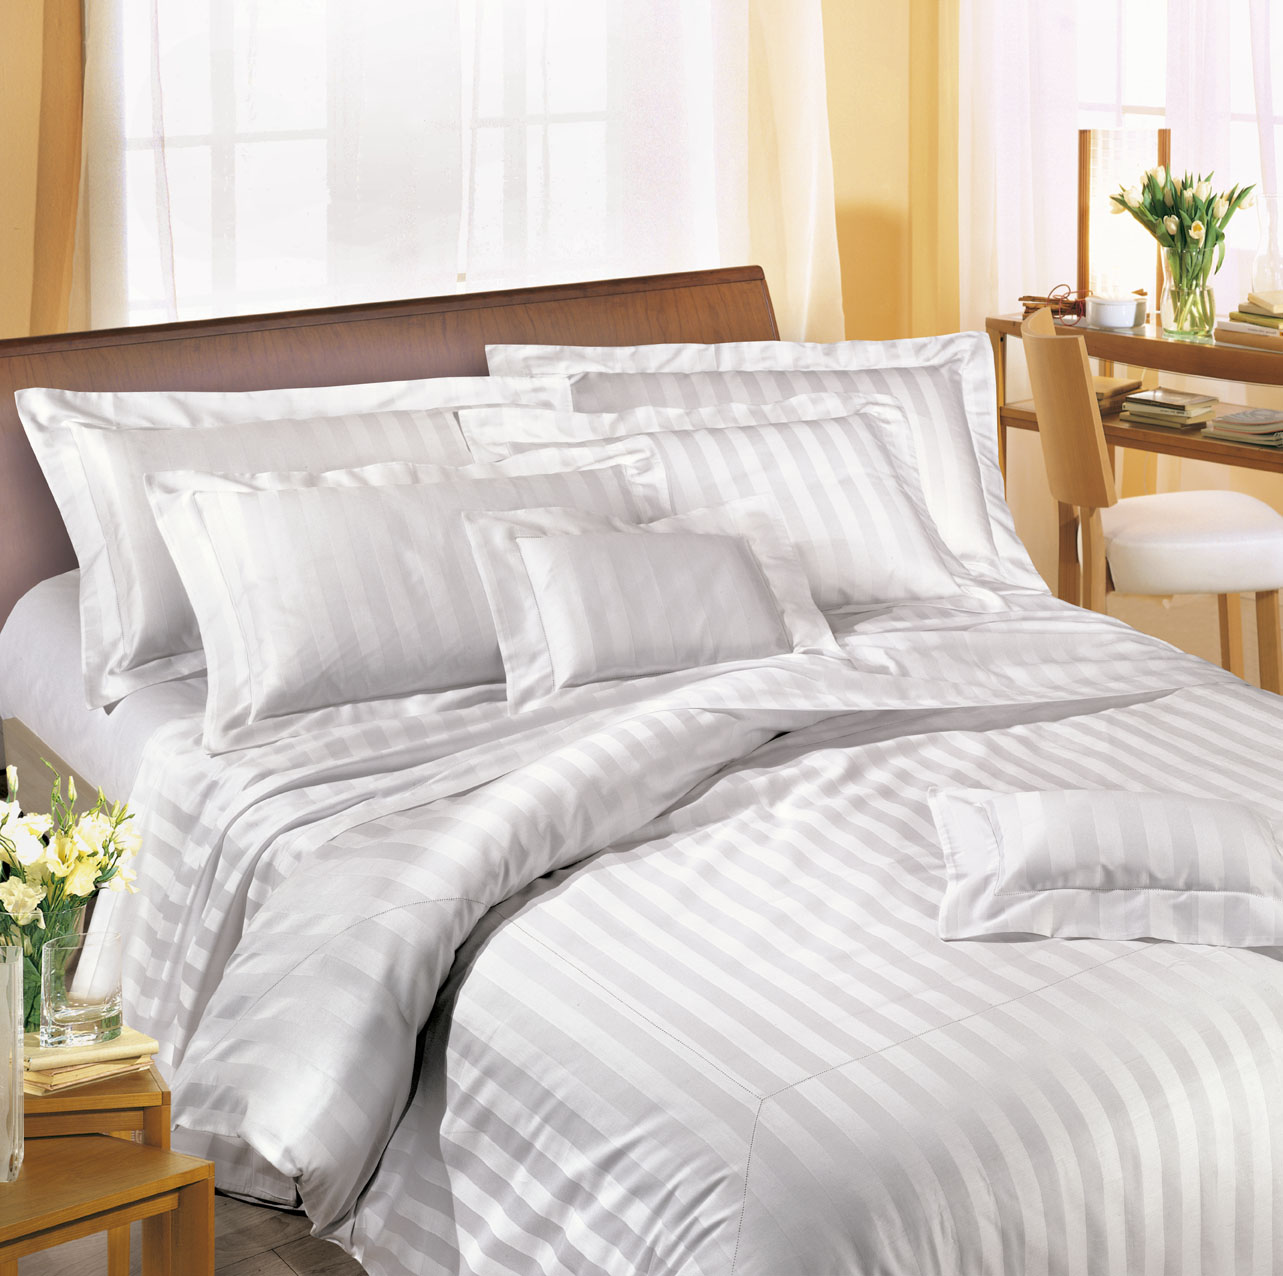 stunning bed linen types 41 for cheap good quality bed linen with bed KOEMTPK